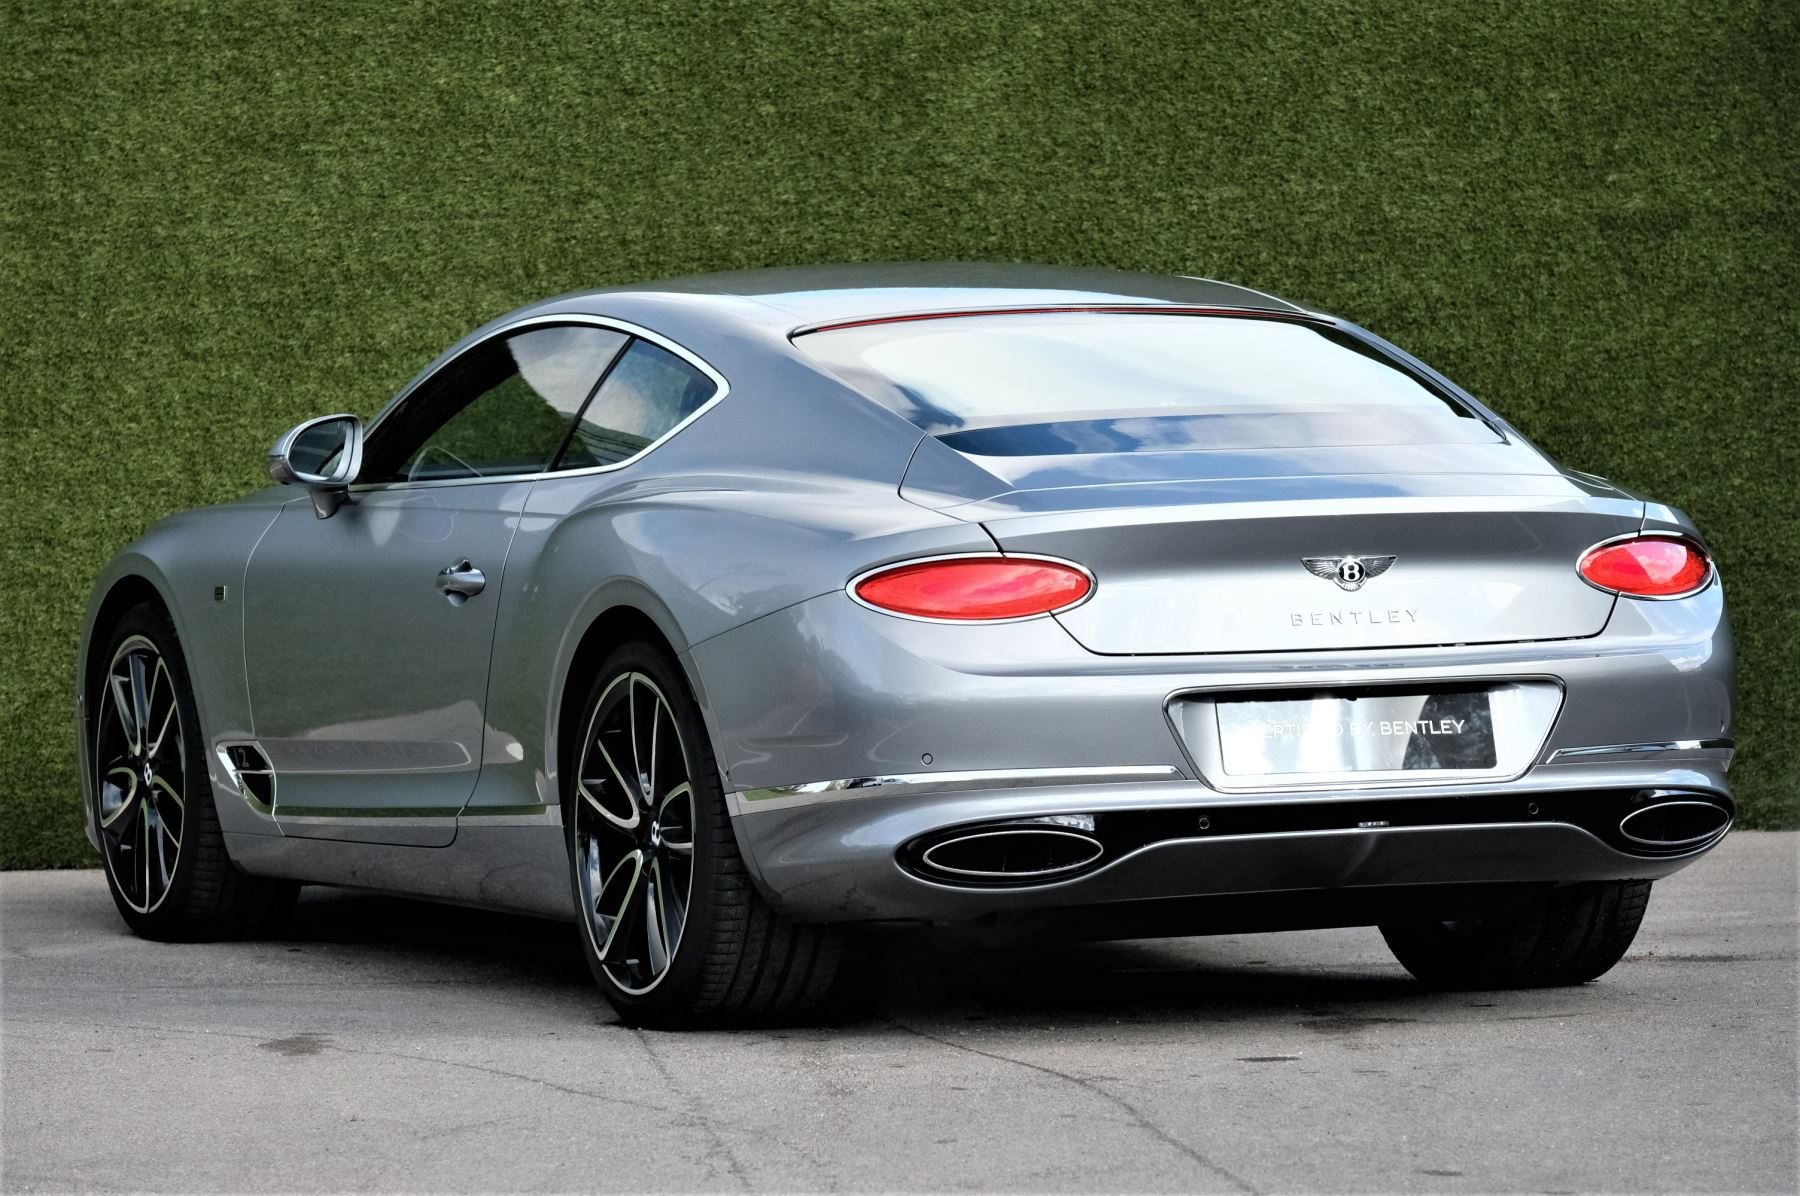 Bentley Continental GT 6.0 W12 First Edition 2dr Auto image 5